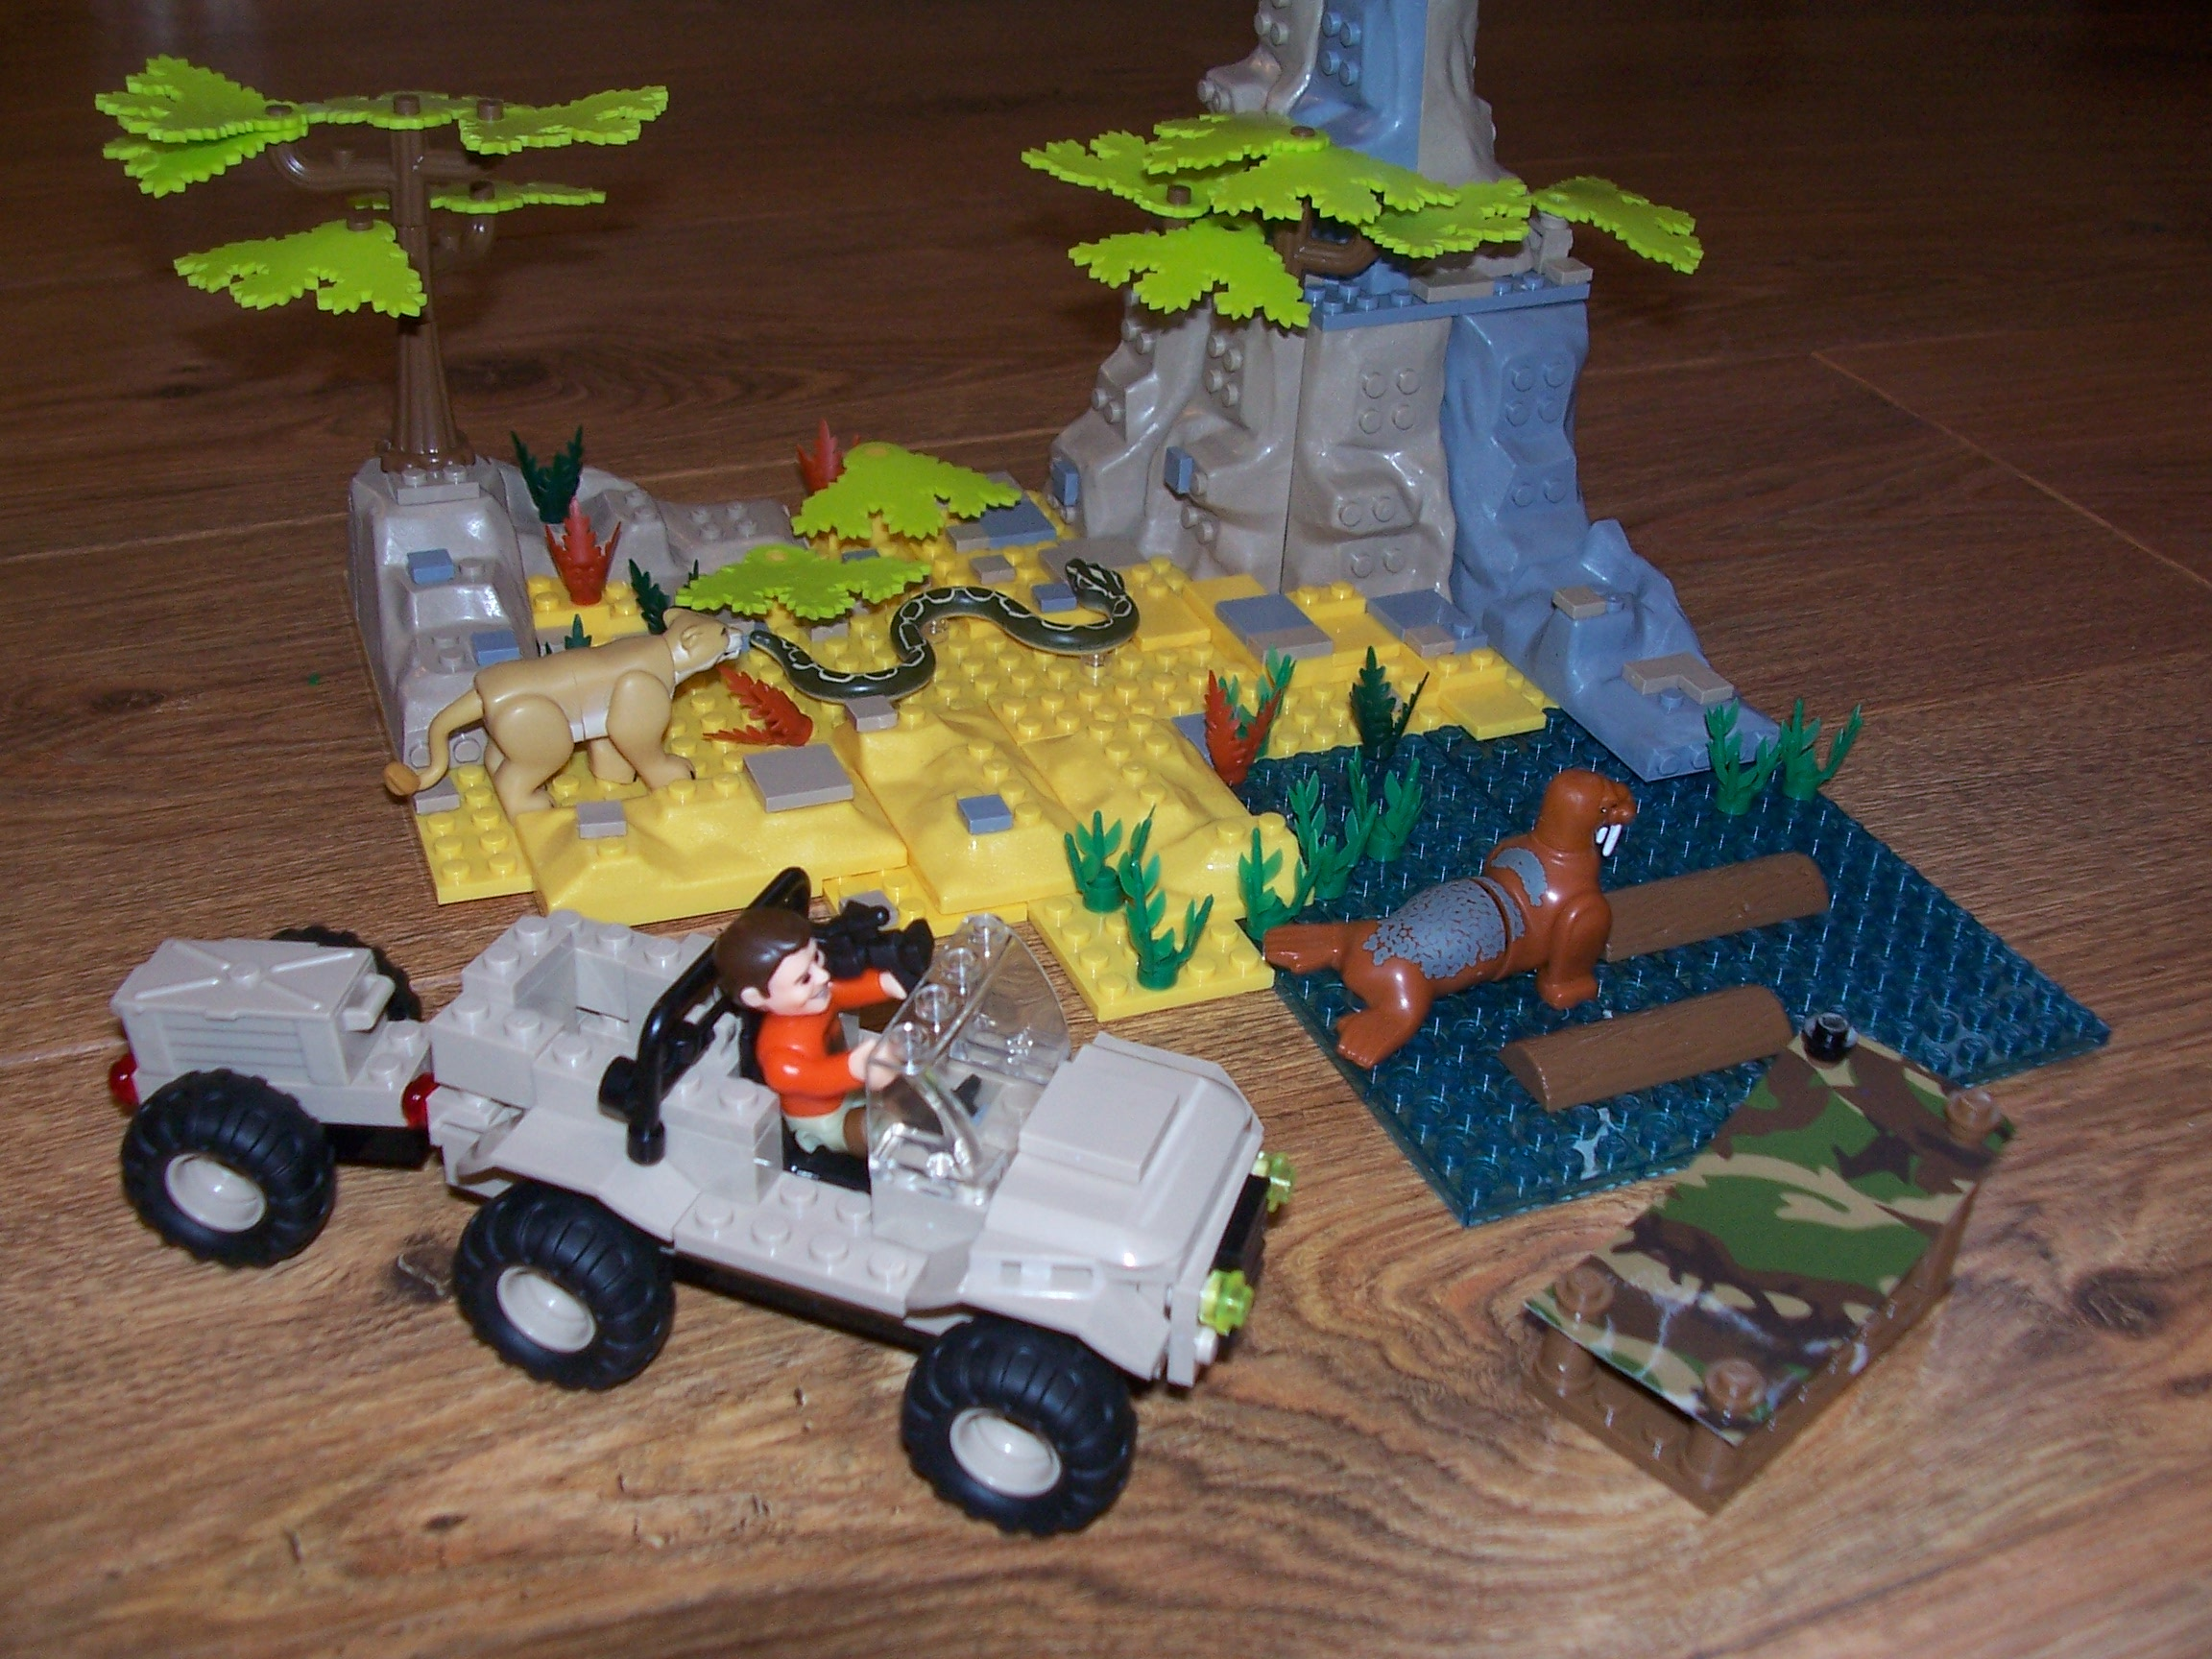 Building Toys From The 60s : Character building deadly steve safari playset